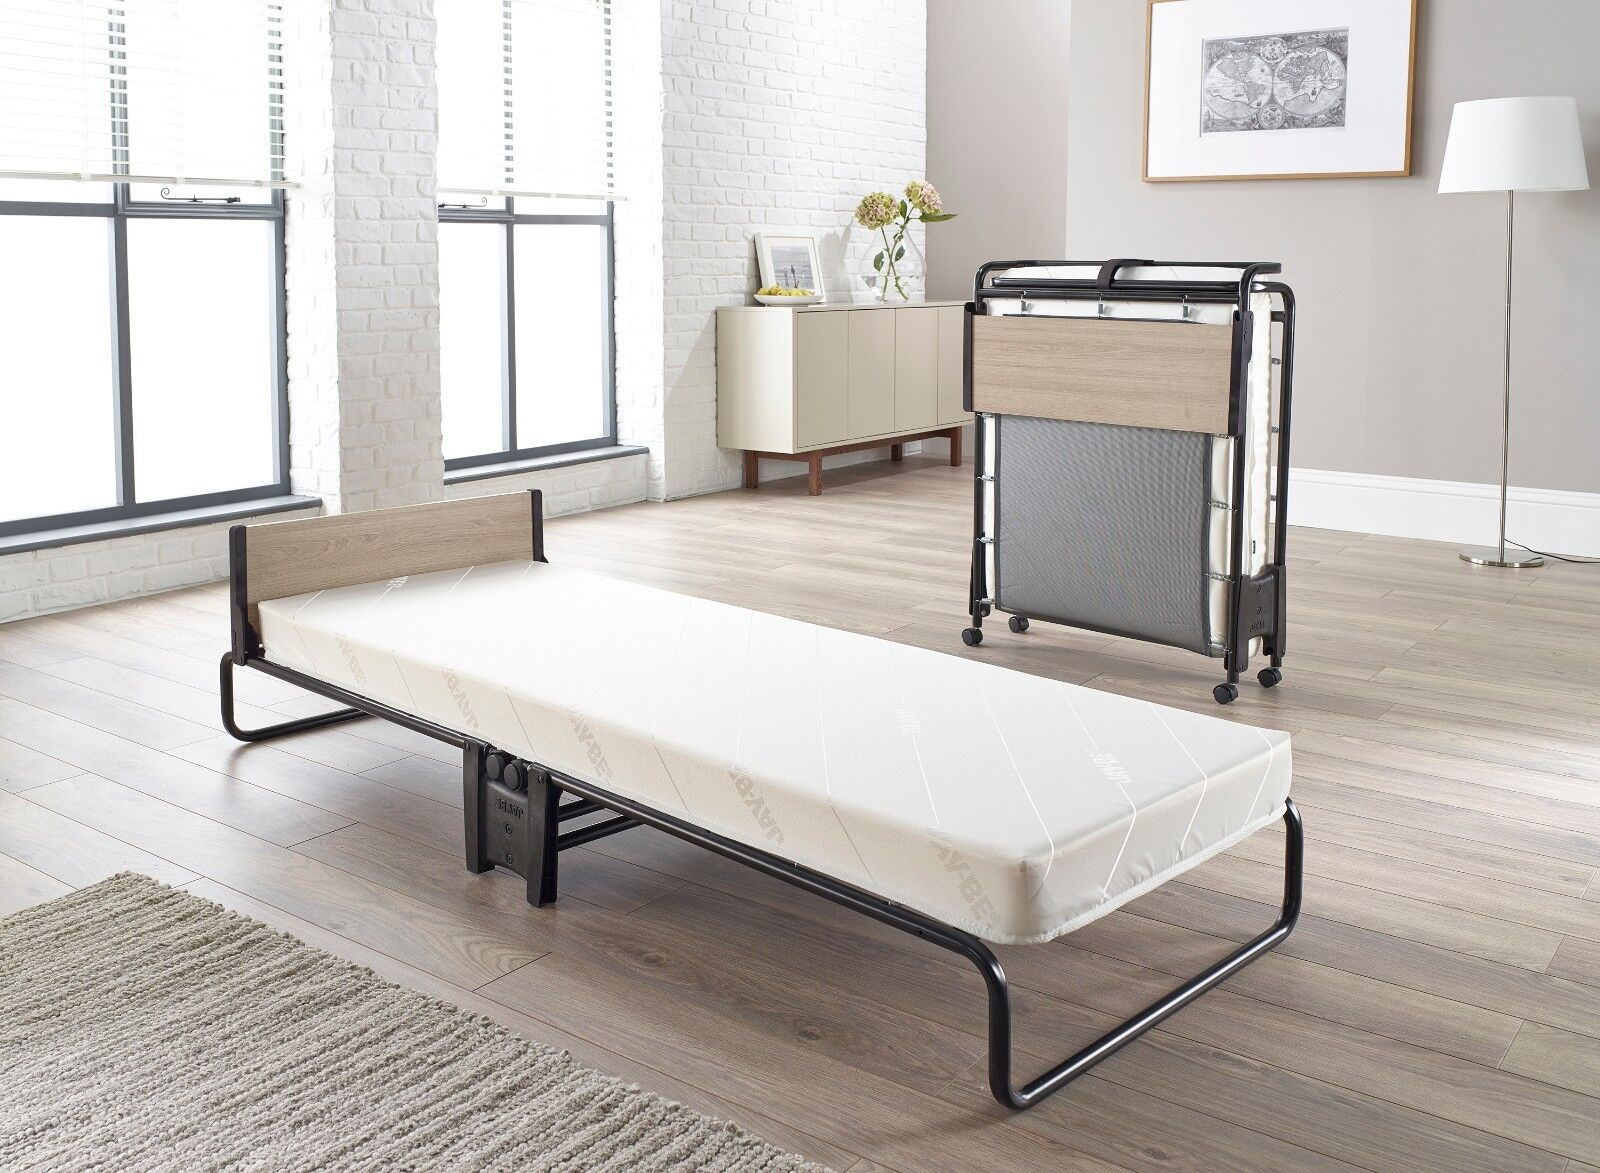 - Jay Be Guest Revolution Small Single Folding Bed With Memory Foam